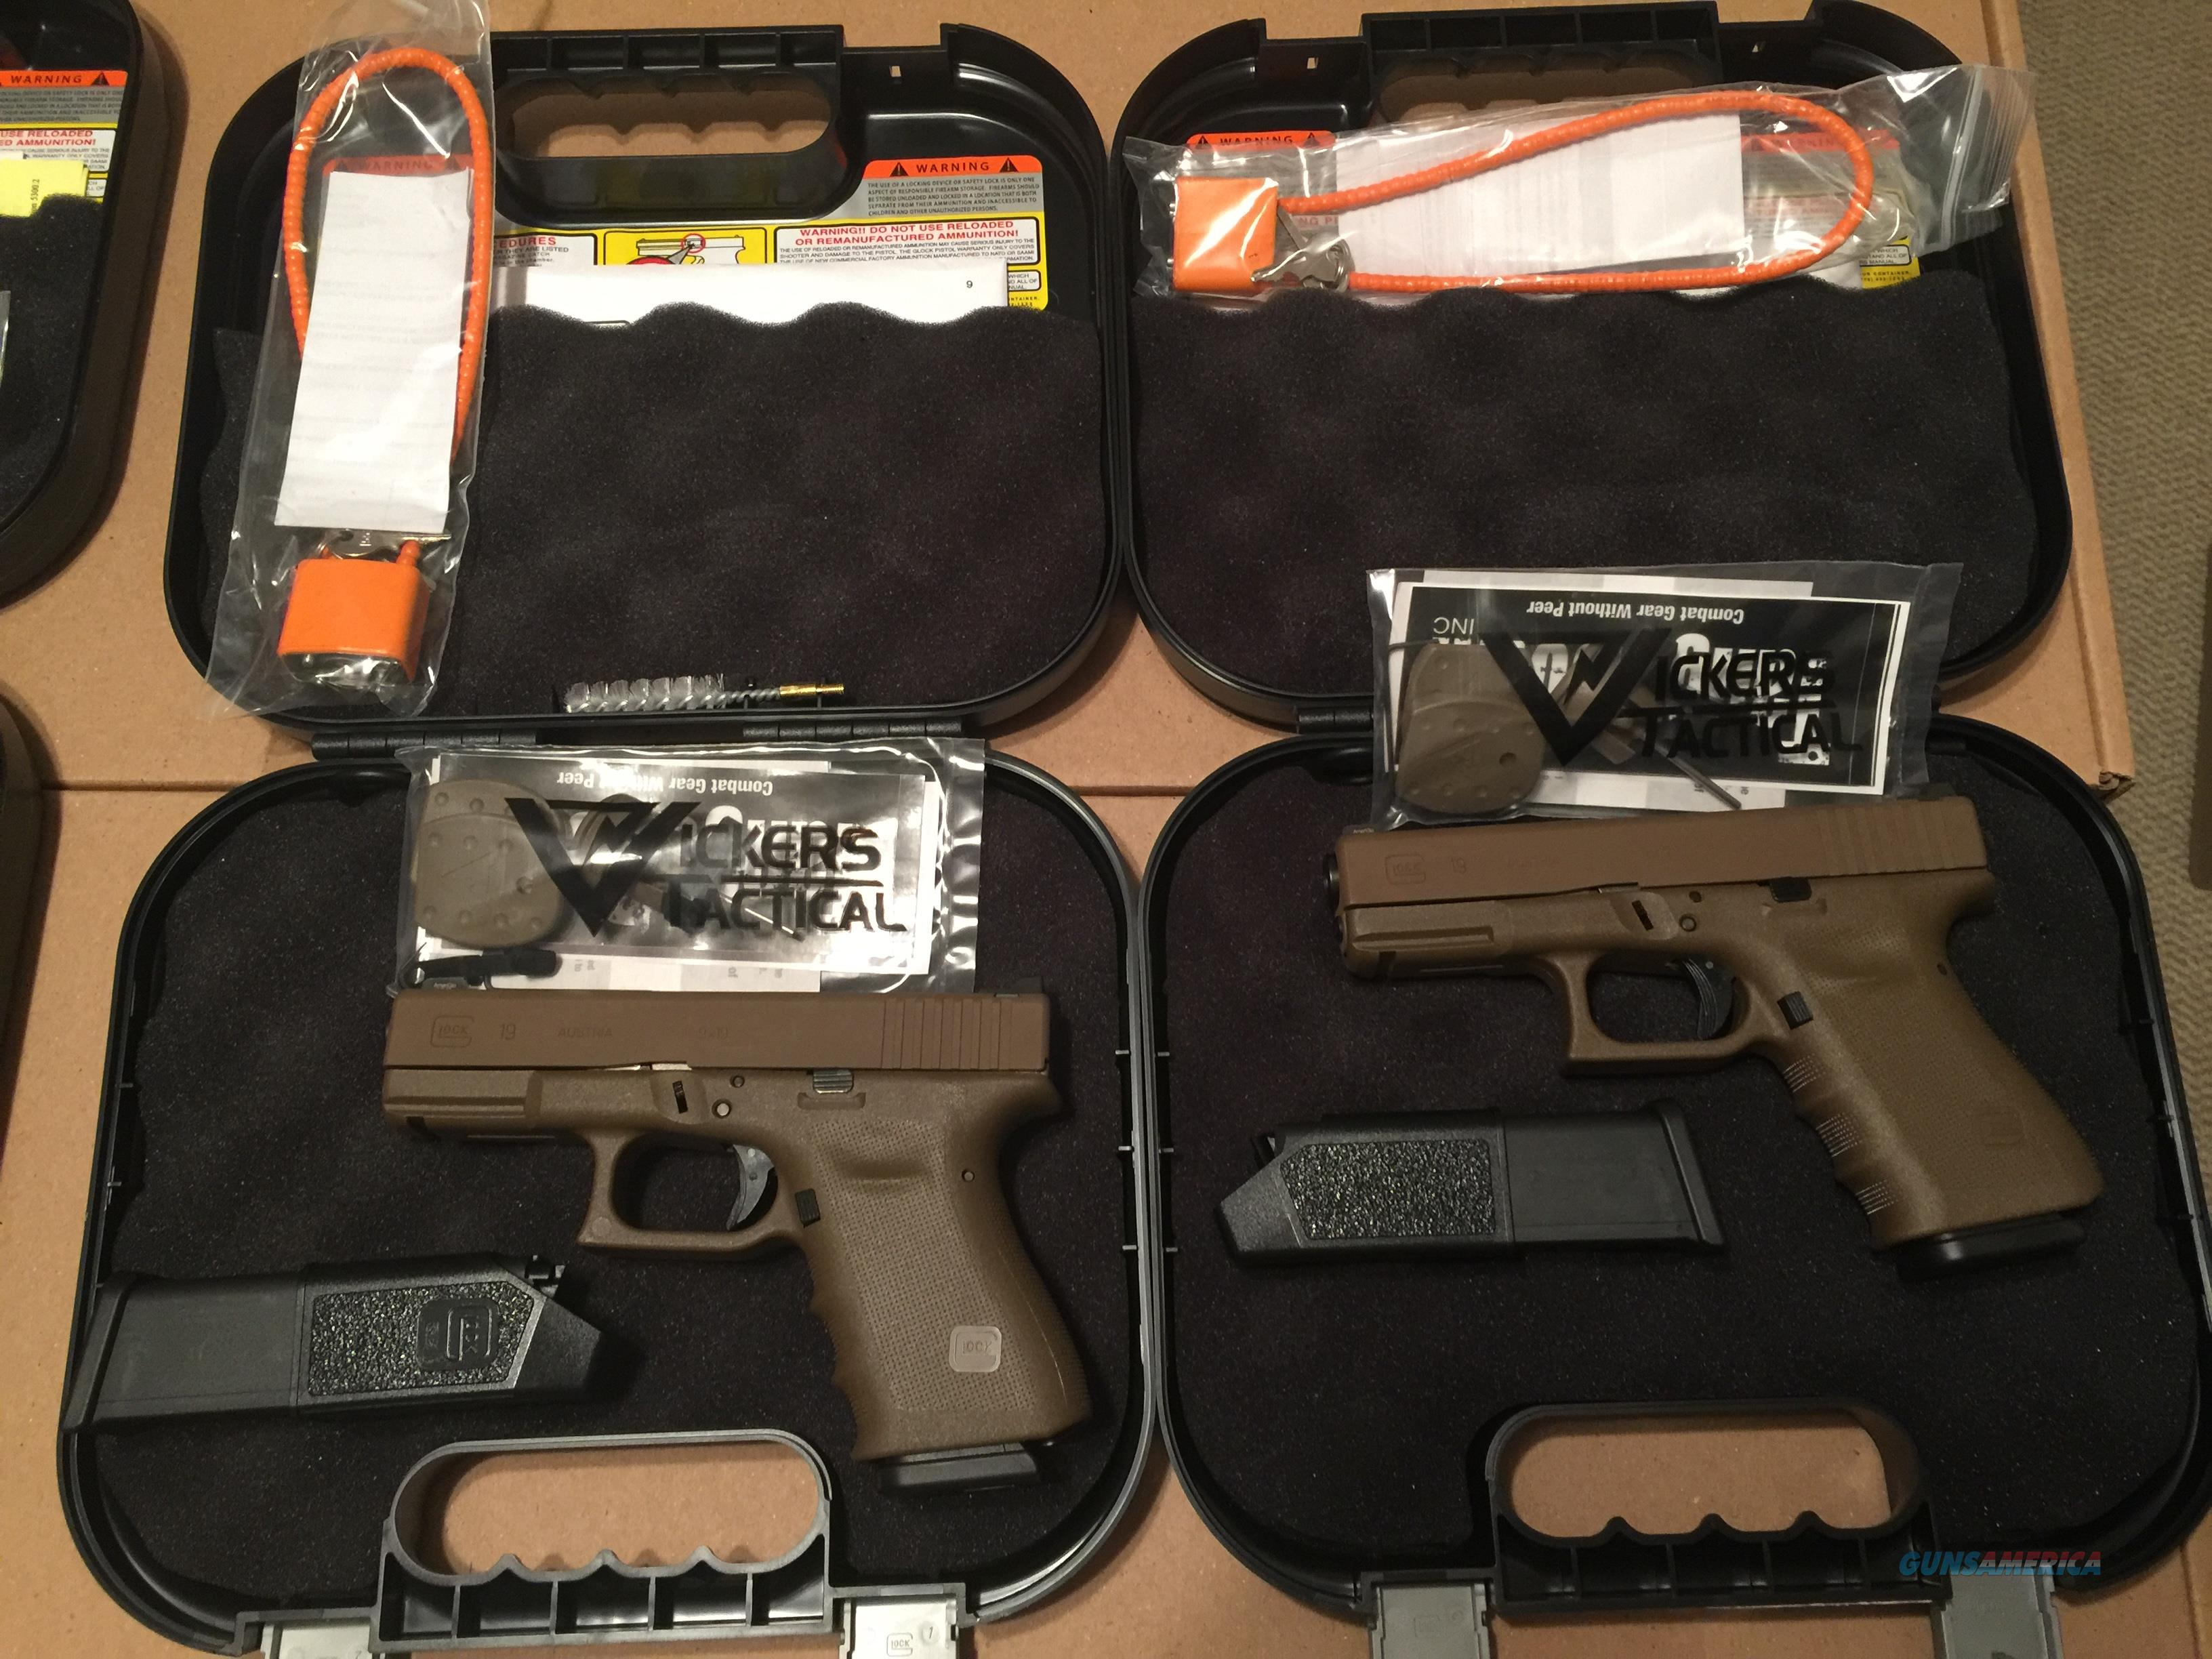 Larry Vickers limited edition G19  Guns > Pistols > Glock Pistols > 19